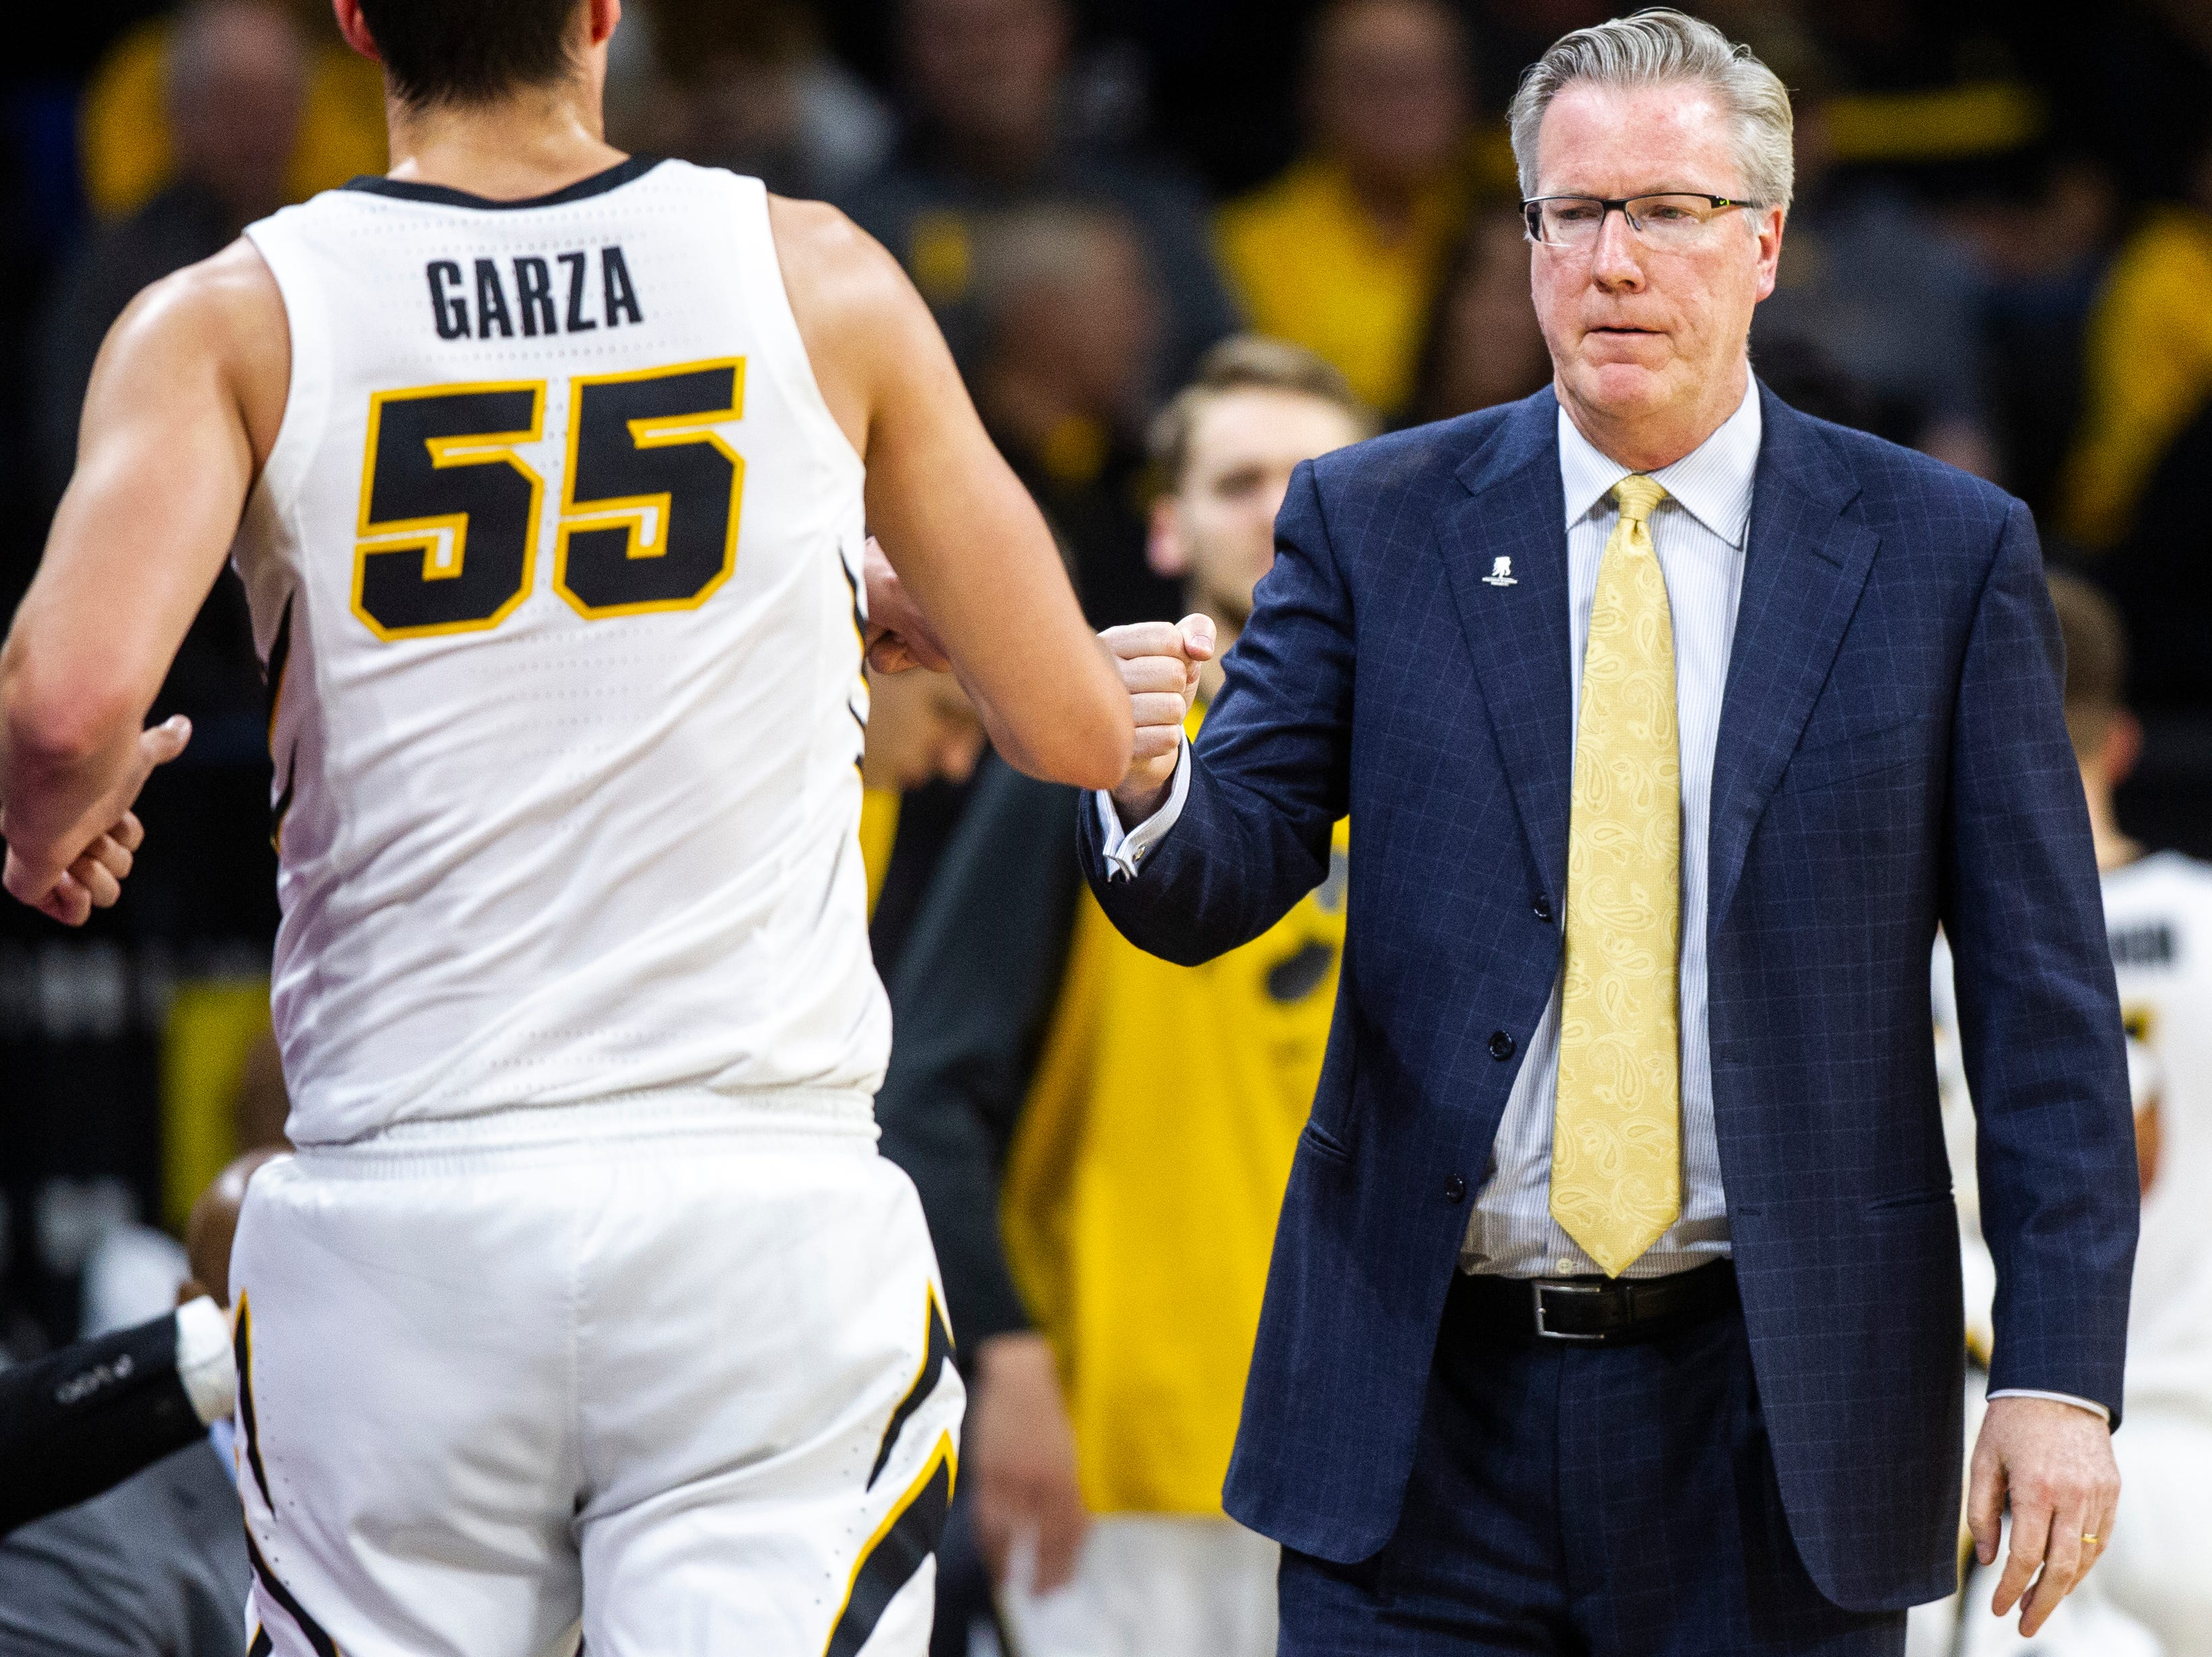 Iowa men's basketball head coach Fran McCaffery bumps fists with Iowa forward Luka Garza (55) during an NCAA men's basketball game on Wednesday, Nov. 21, 2018, at Carver-Hawkeye Arena in Iowa City.